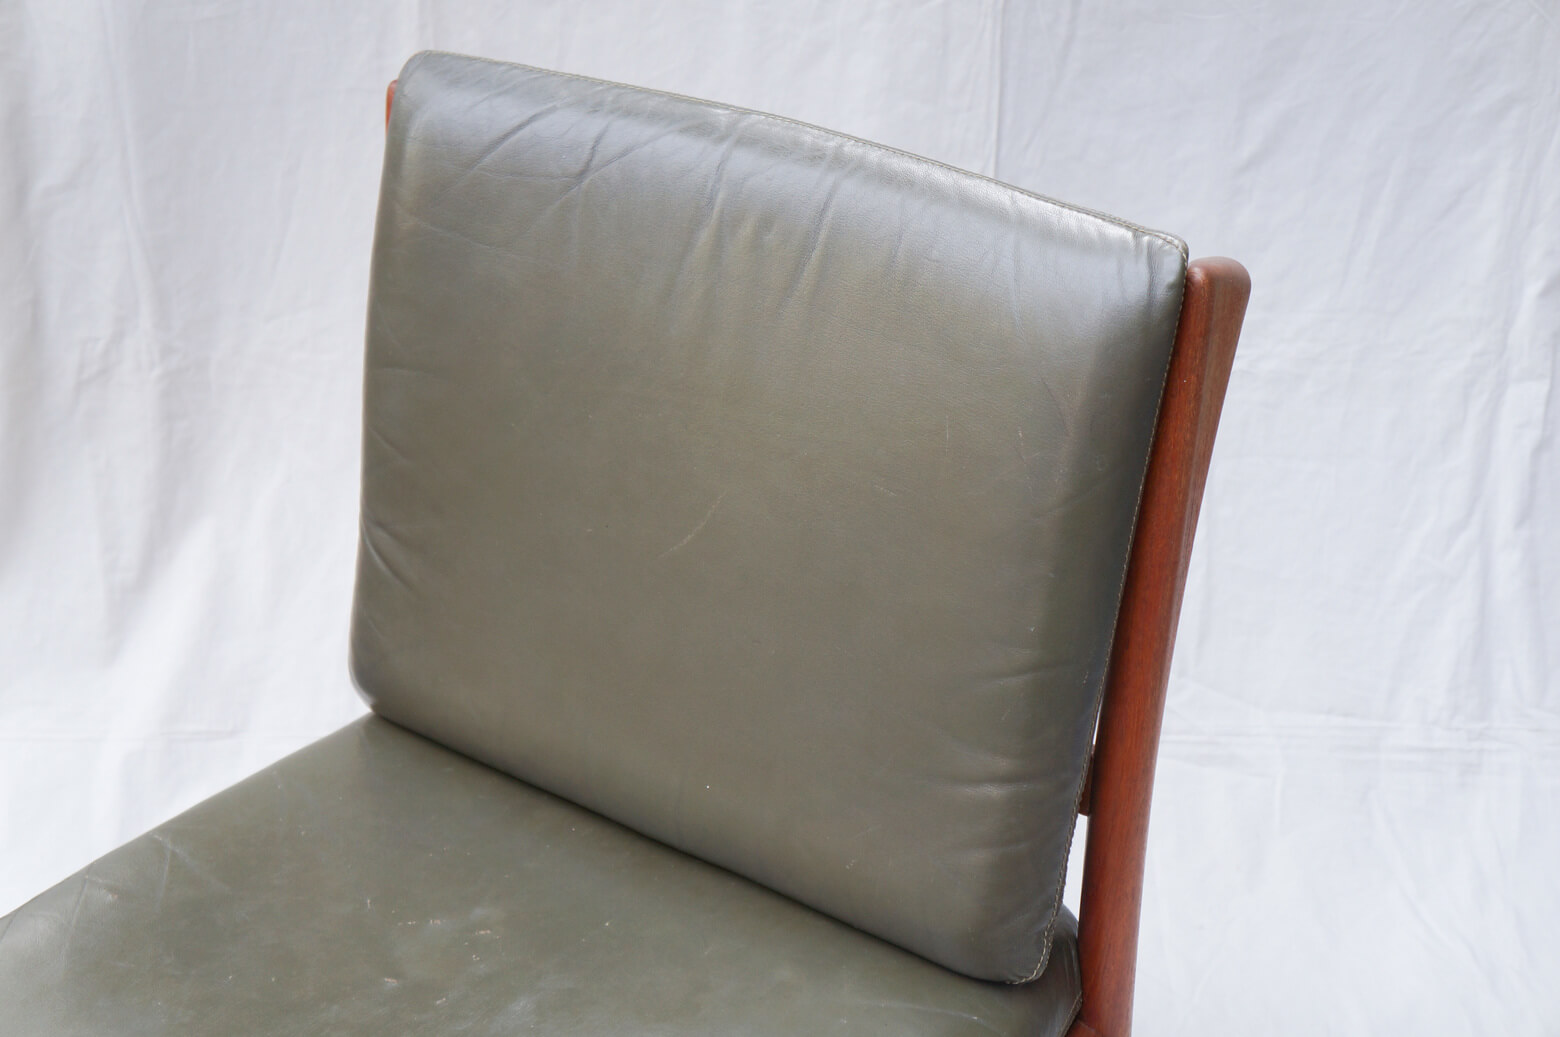 Vintage HITA CRAFTS Dining Chair Armless/ヴィンテージ 日田工芸 ダイニングチェア アームレス 1